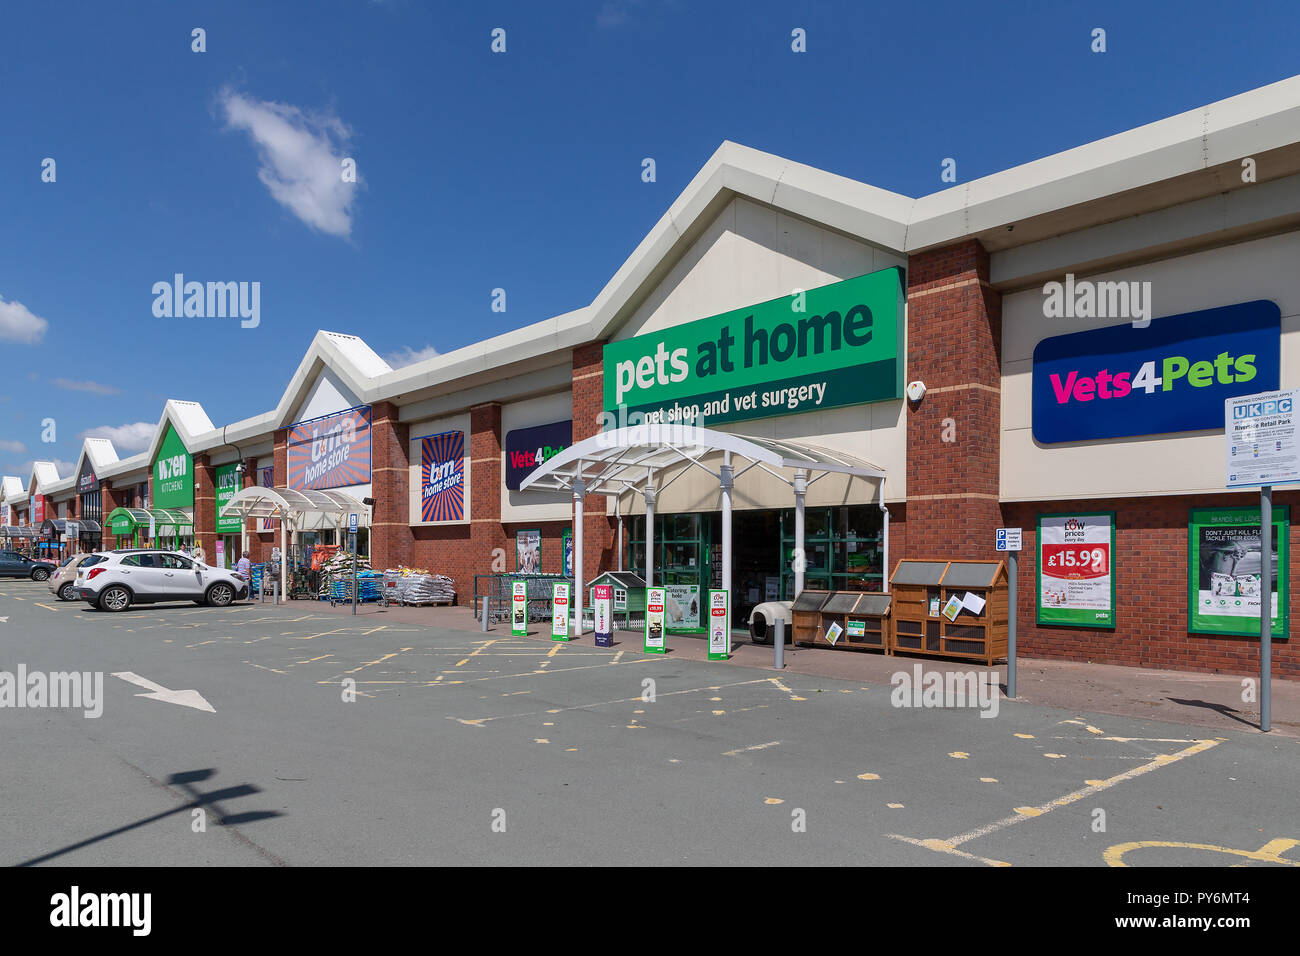 Warrington Branch Of Pets At Home With Vets4pets Inside Stock Photo Alamy